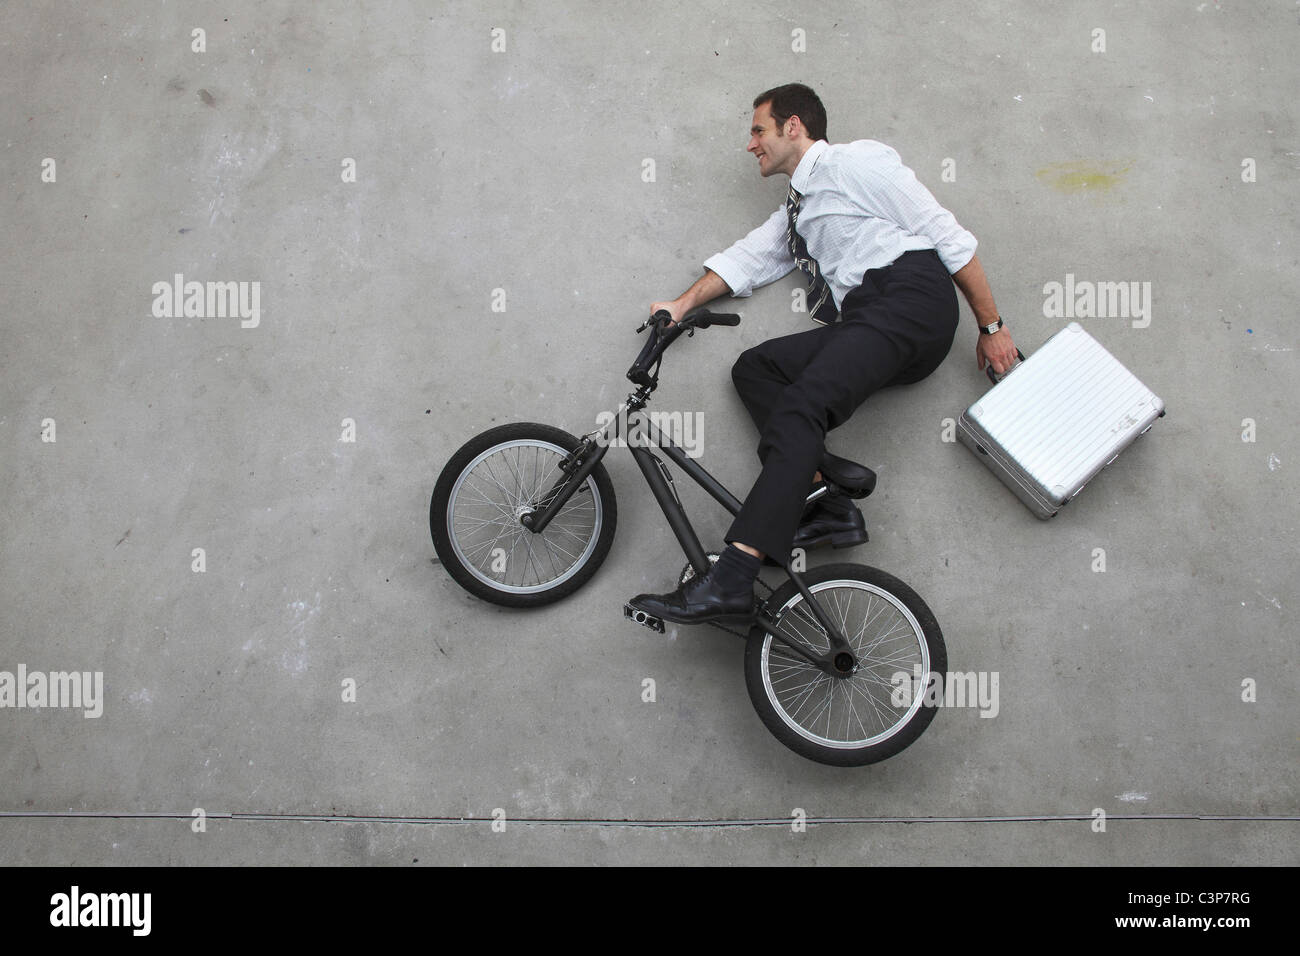 Businessman riding bicycle holding suitcase, elevated view - Stock Image